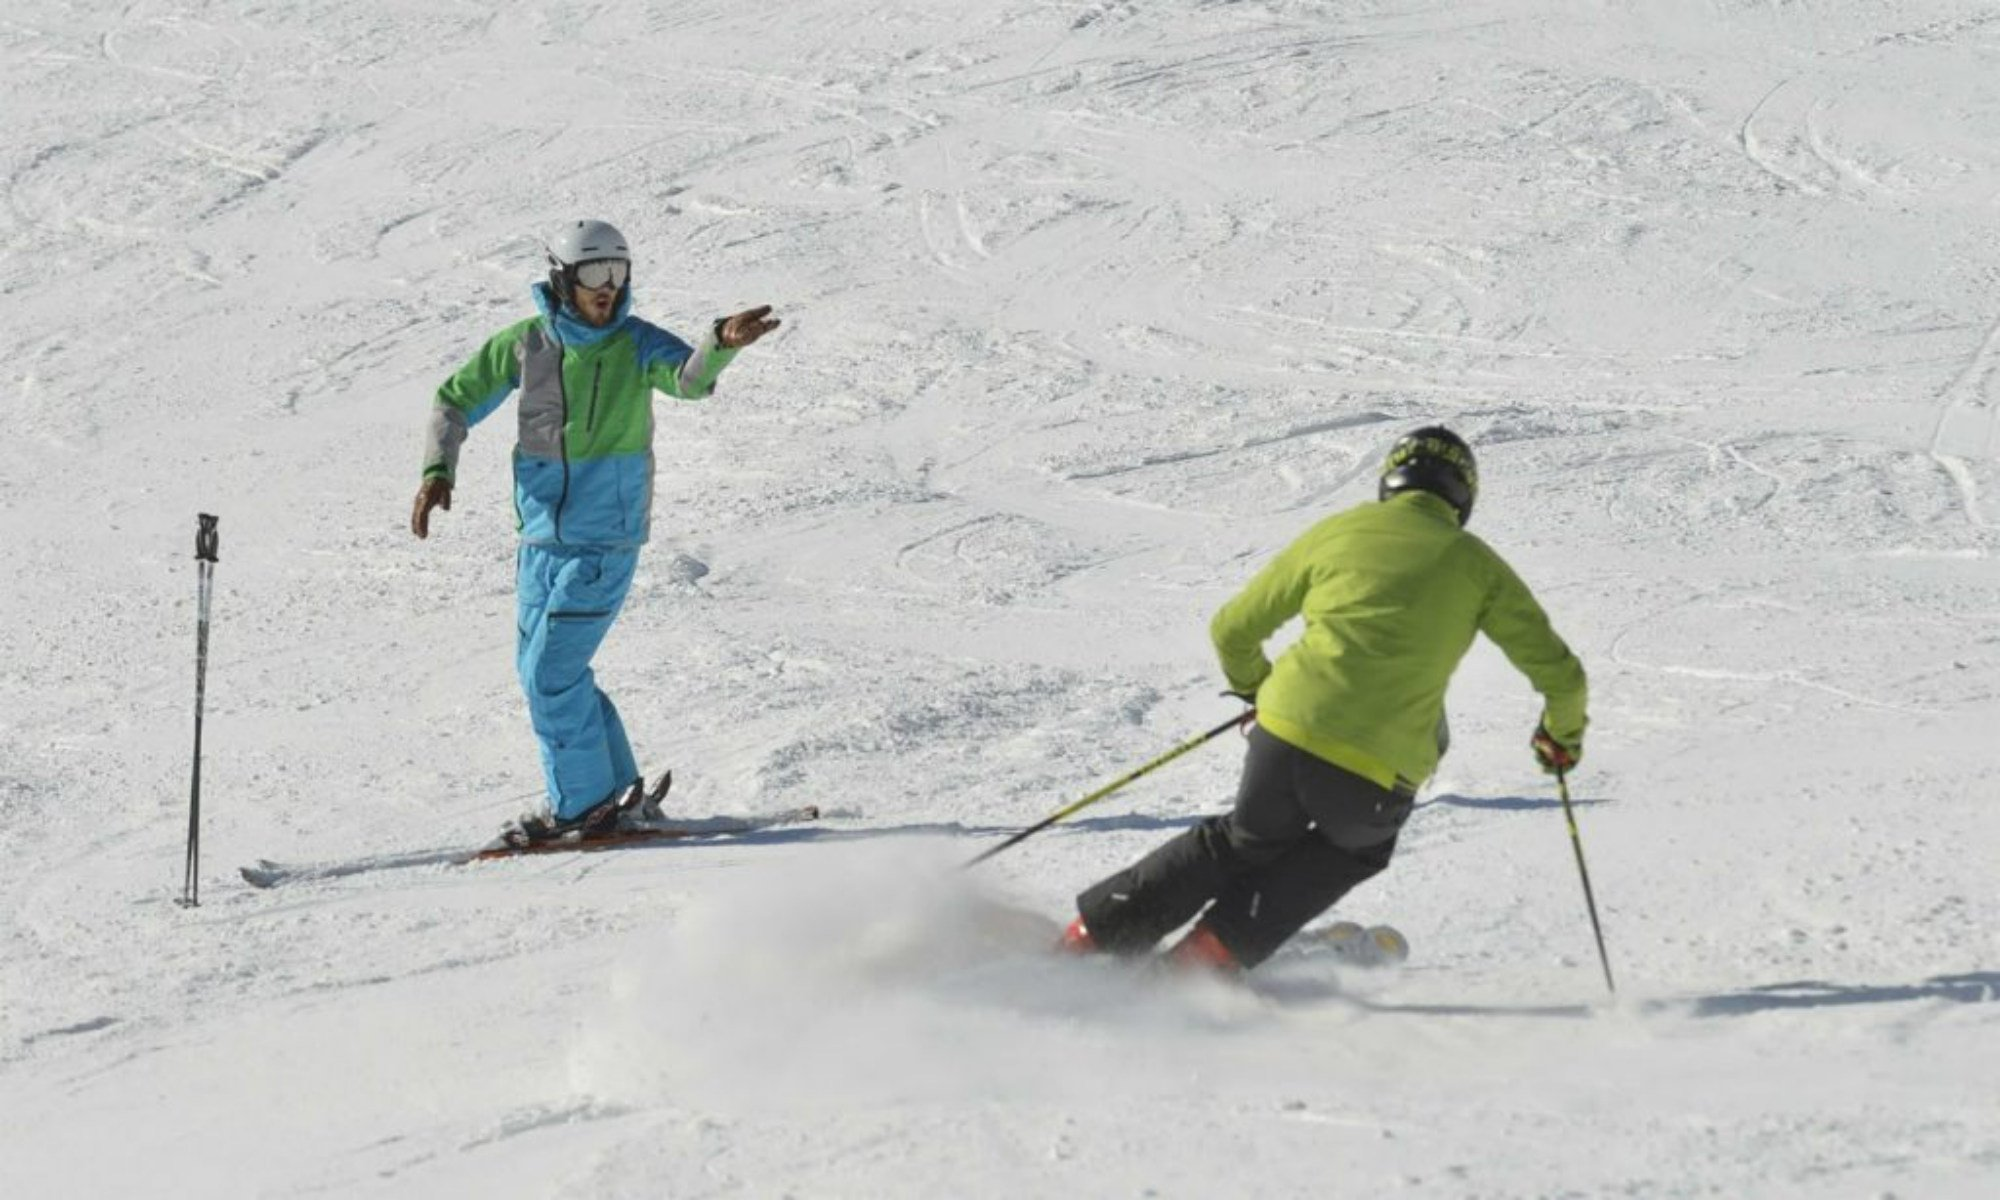 A skier working on his pole planting technique.